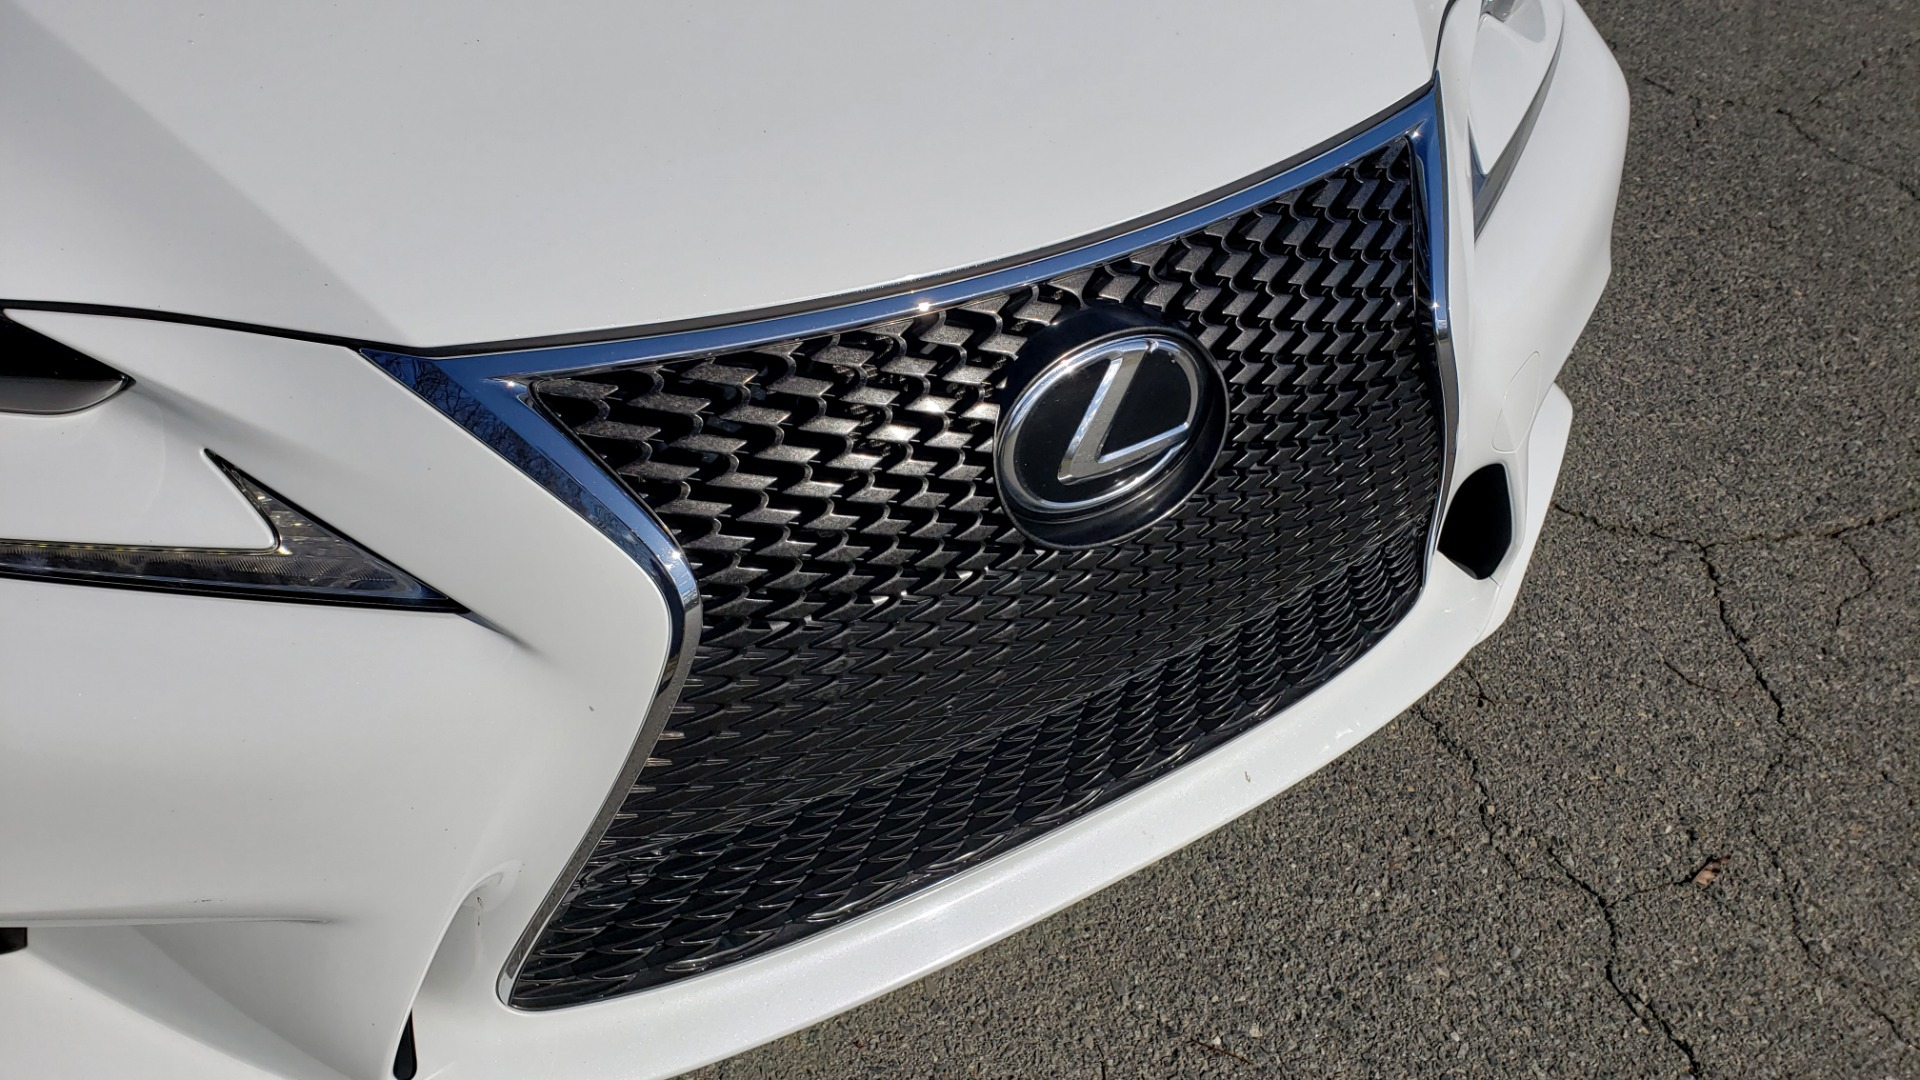 Used 2014 Lexus IS 250 F-SPORT / NAV / SUNROOF / REARVIEW / BSM for sale Sold at Formula Imports in Charlotte NC 28227 9